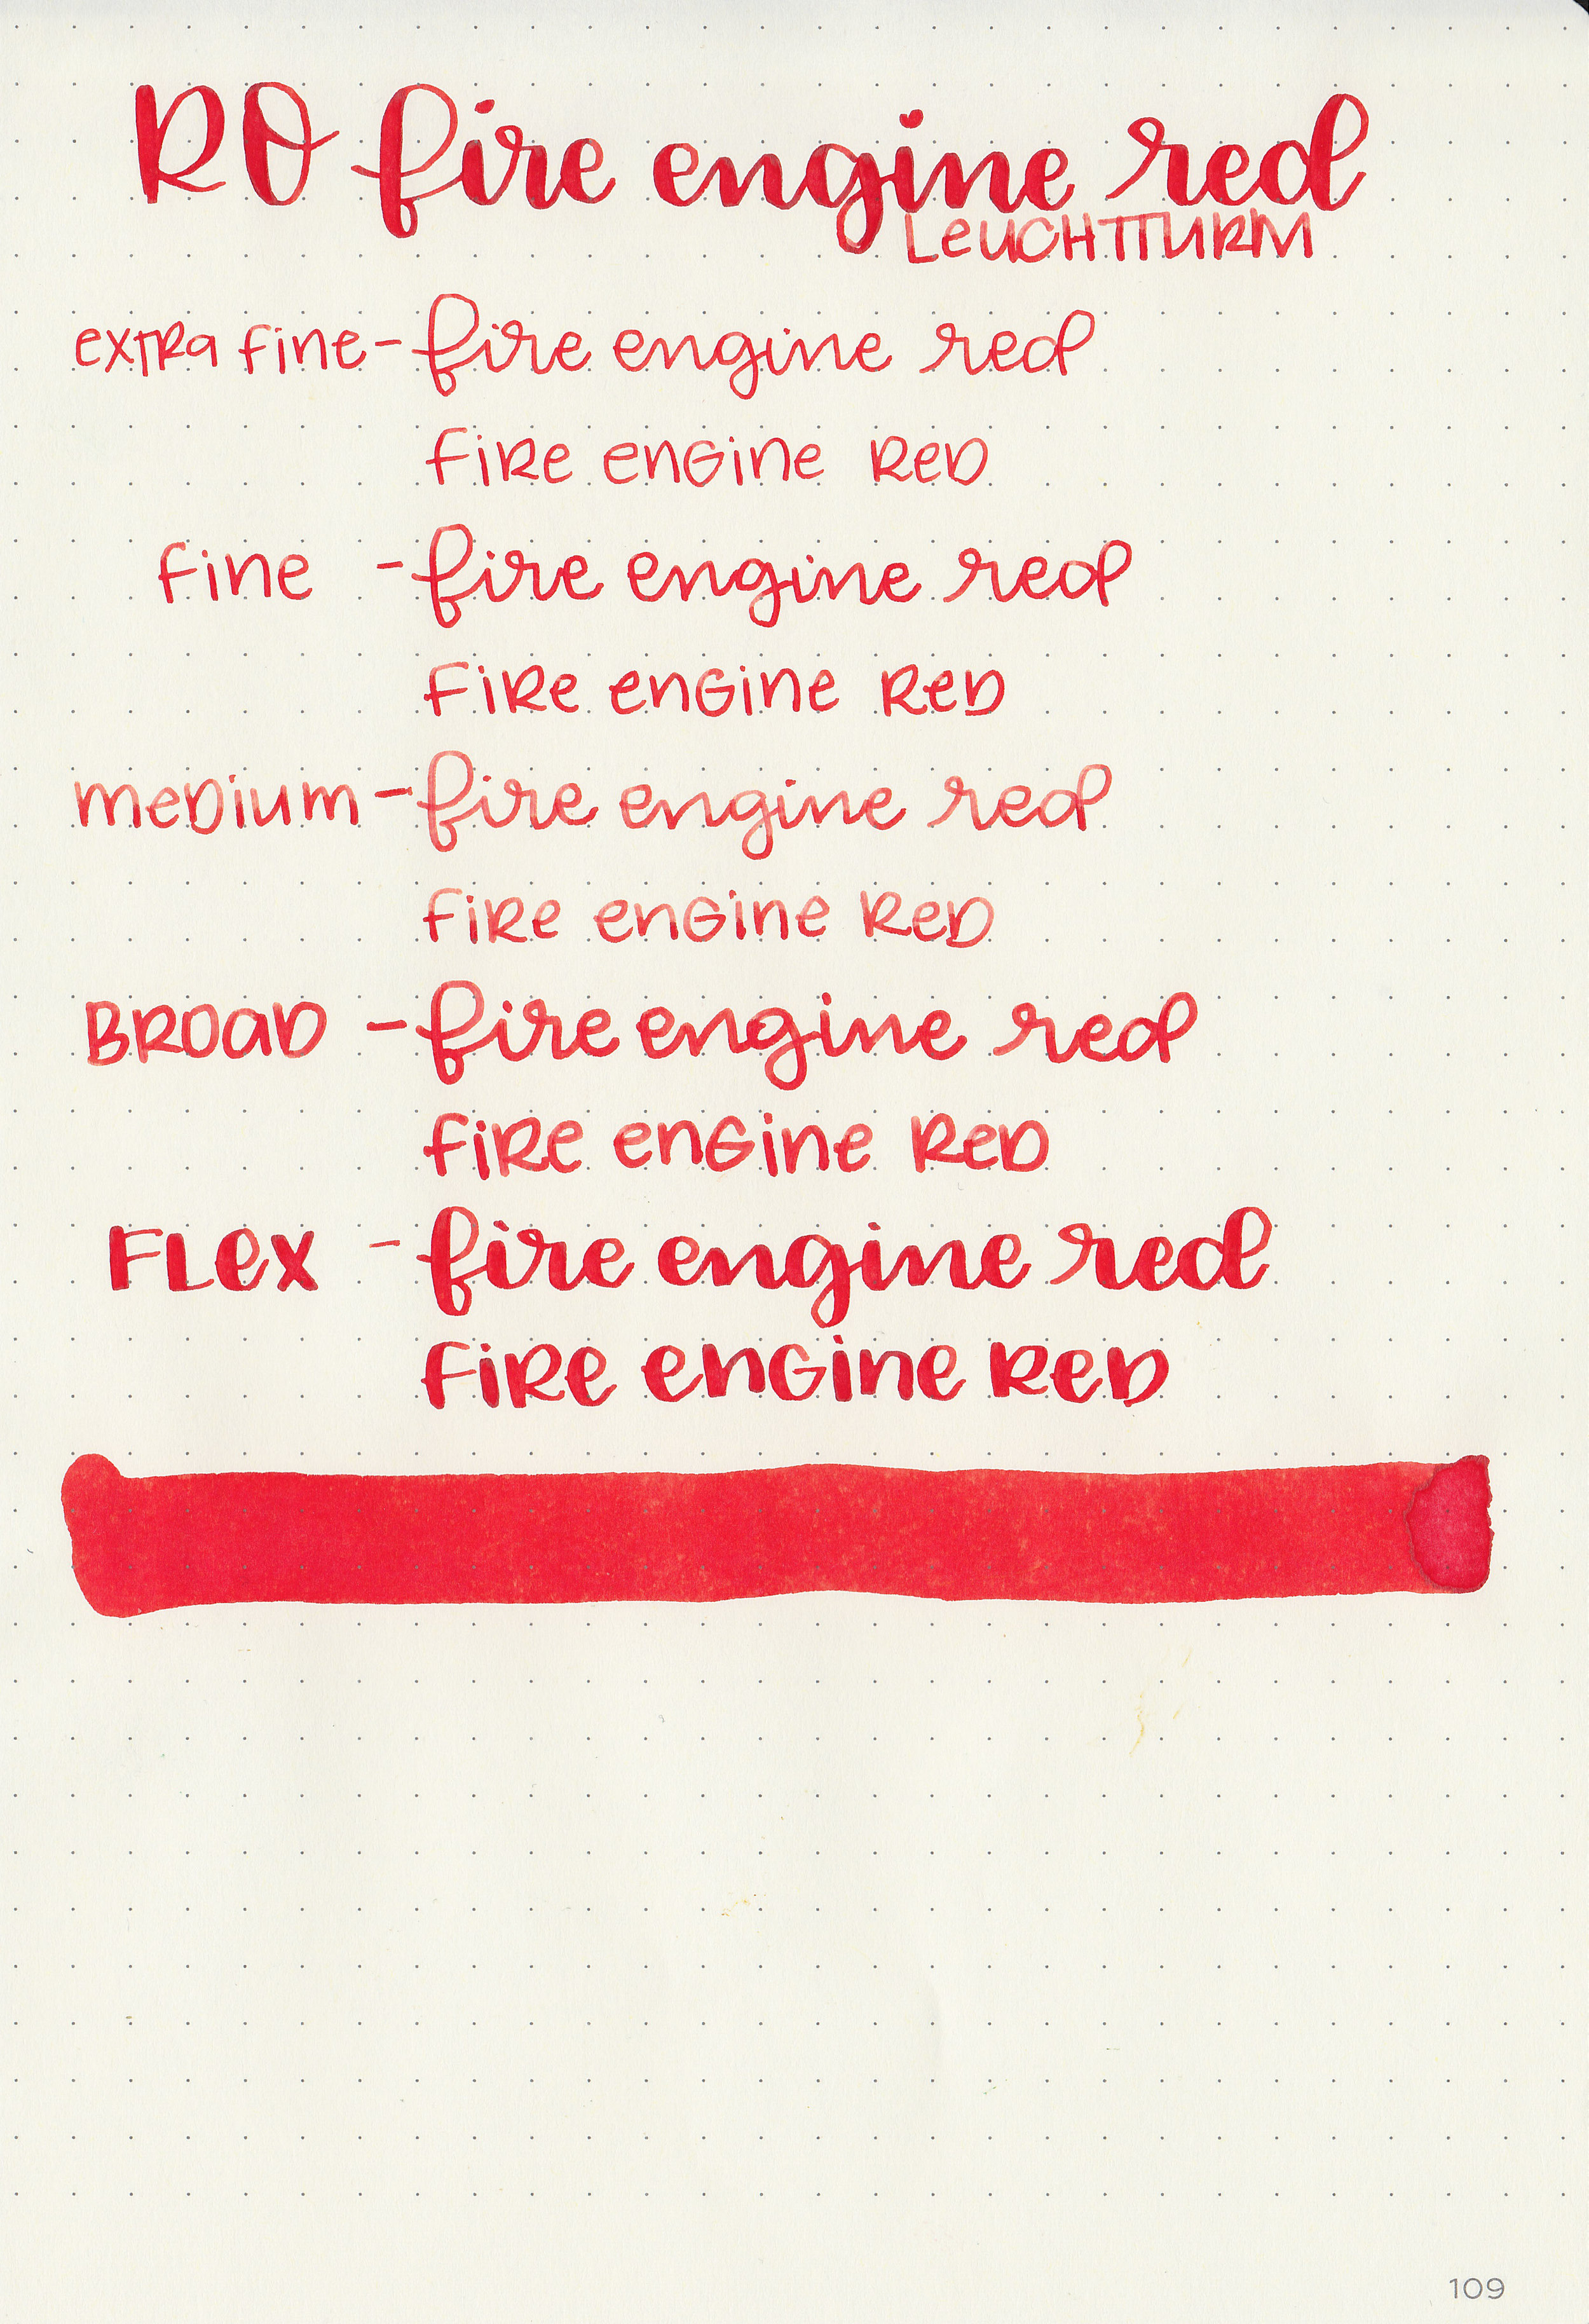 ro-fire-engine-red-12.jpg